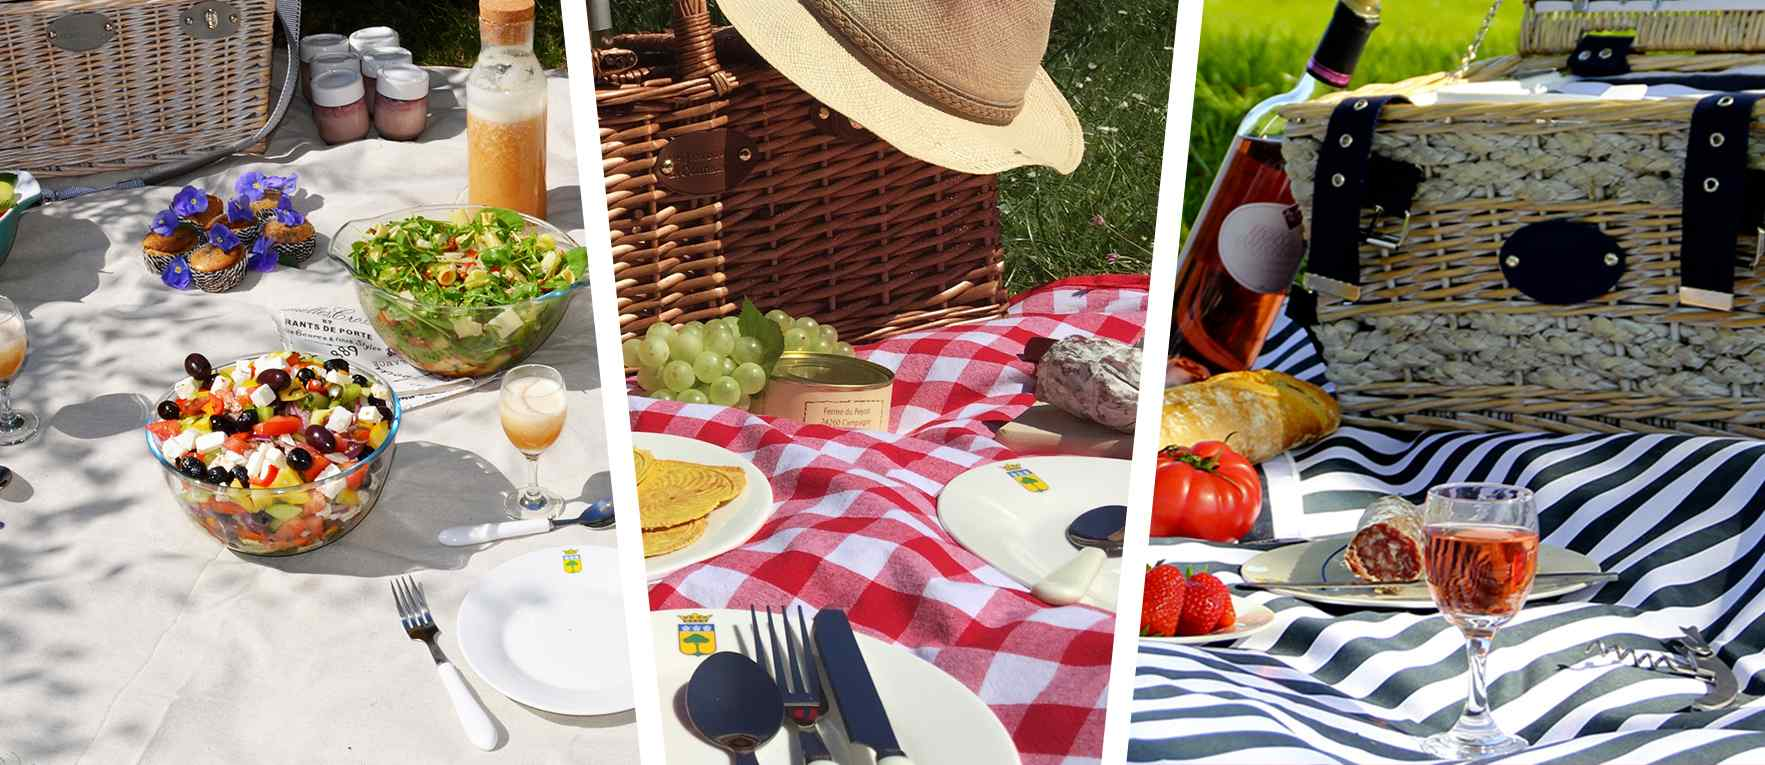 Beige, red check and blue striped waterproof picnic tablecloth